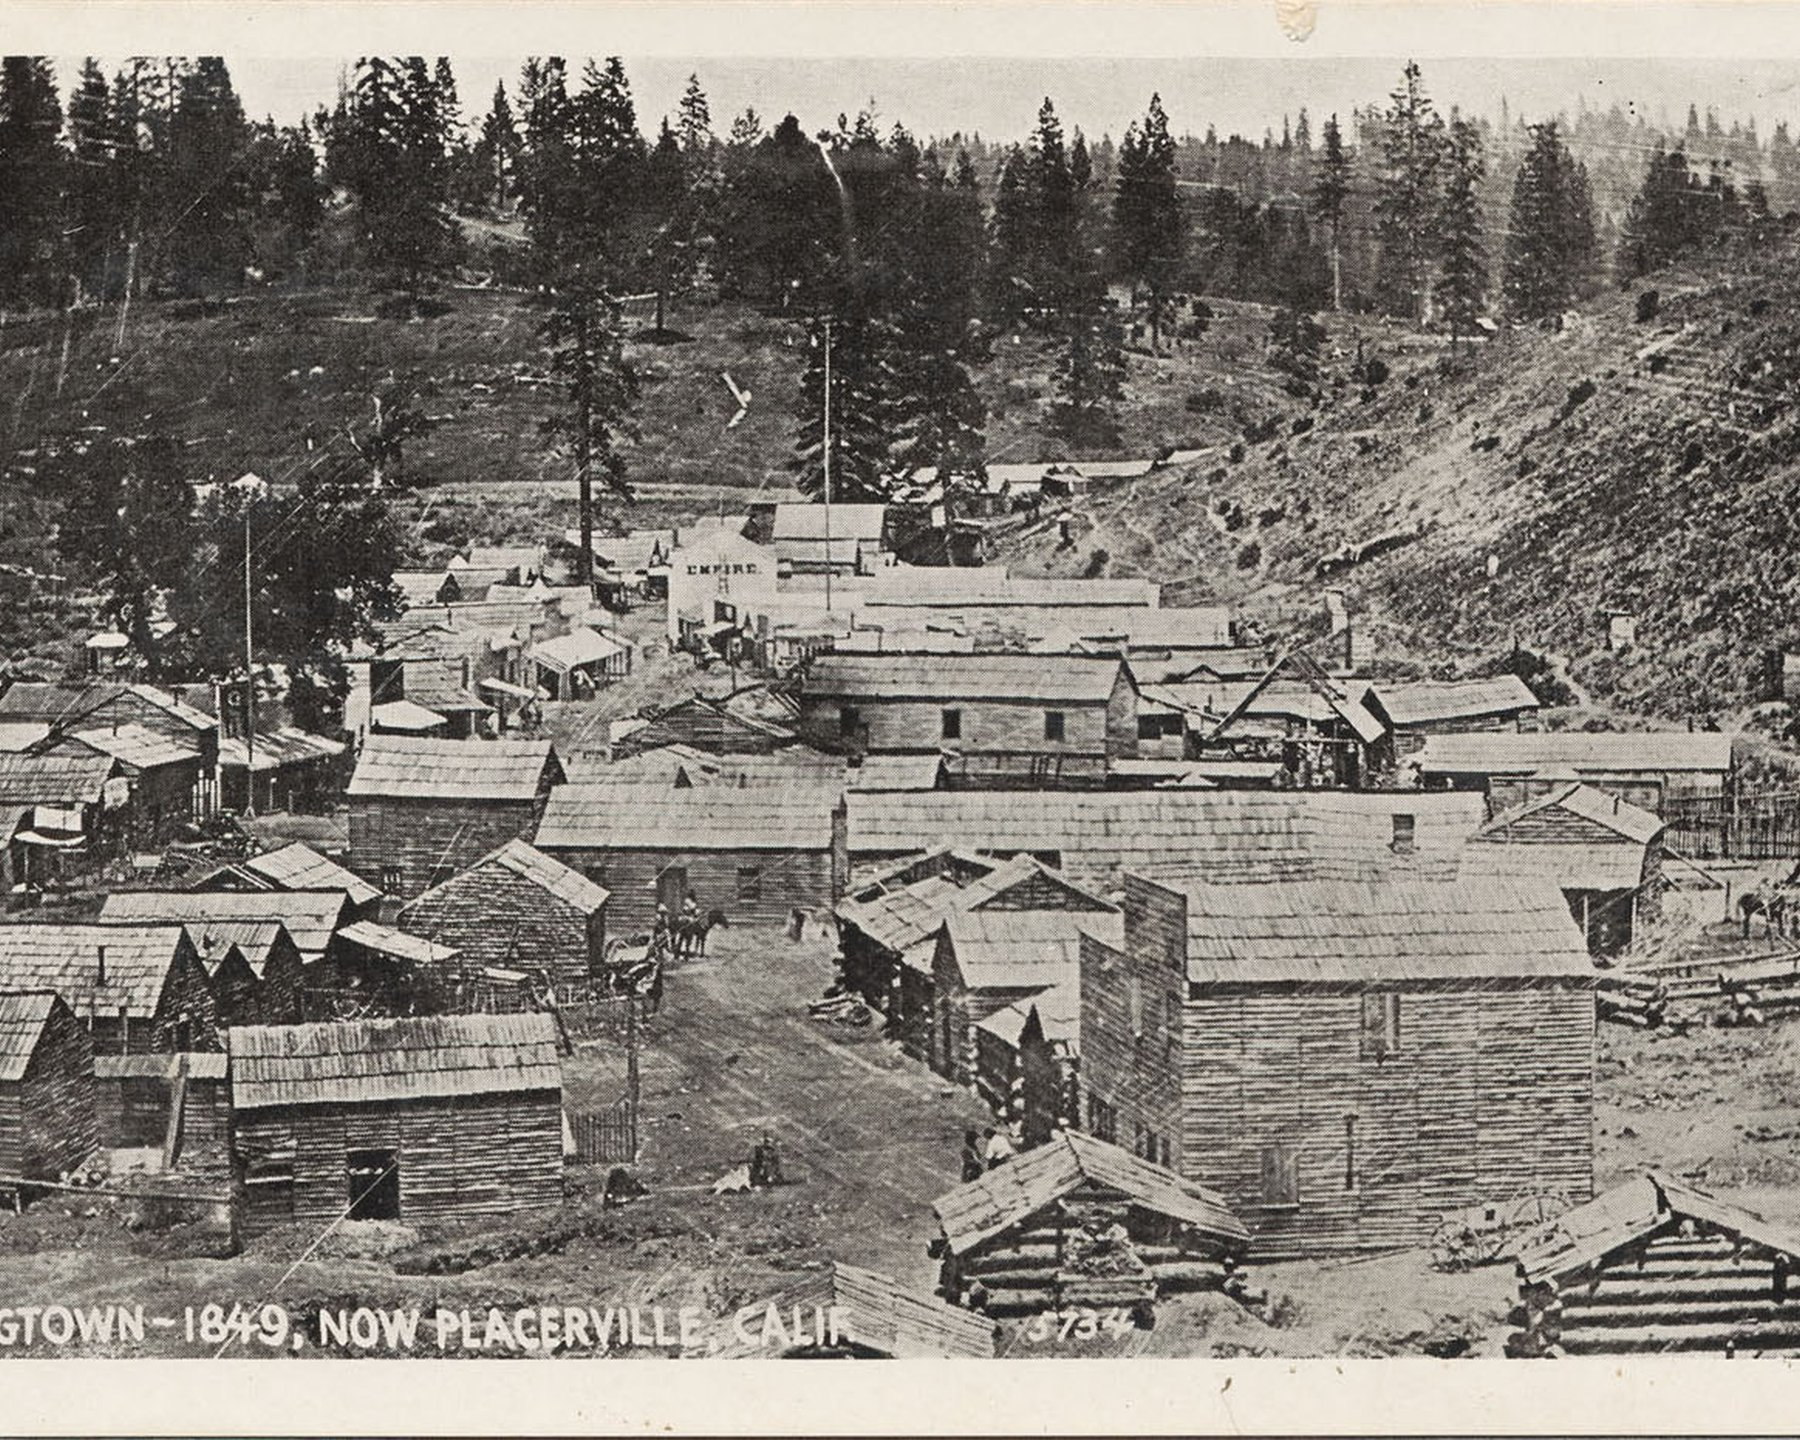 City of Placerville, California - Home